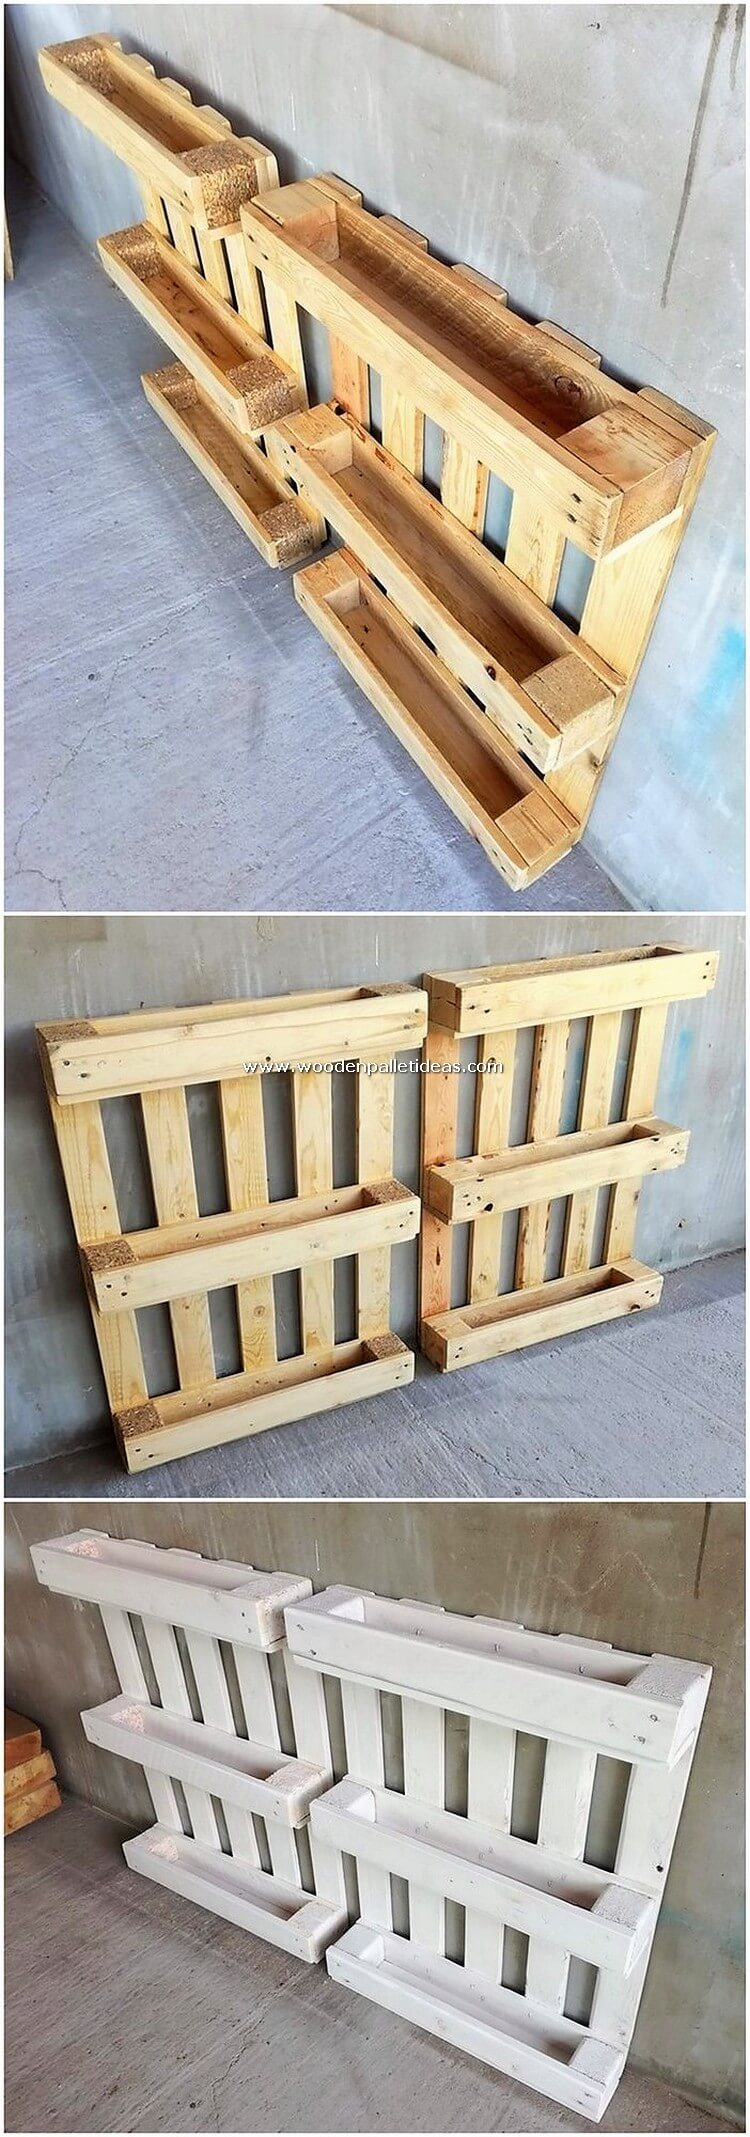 Pallet-Shelving-Stands